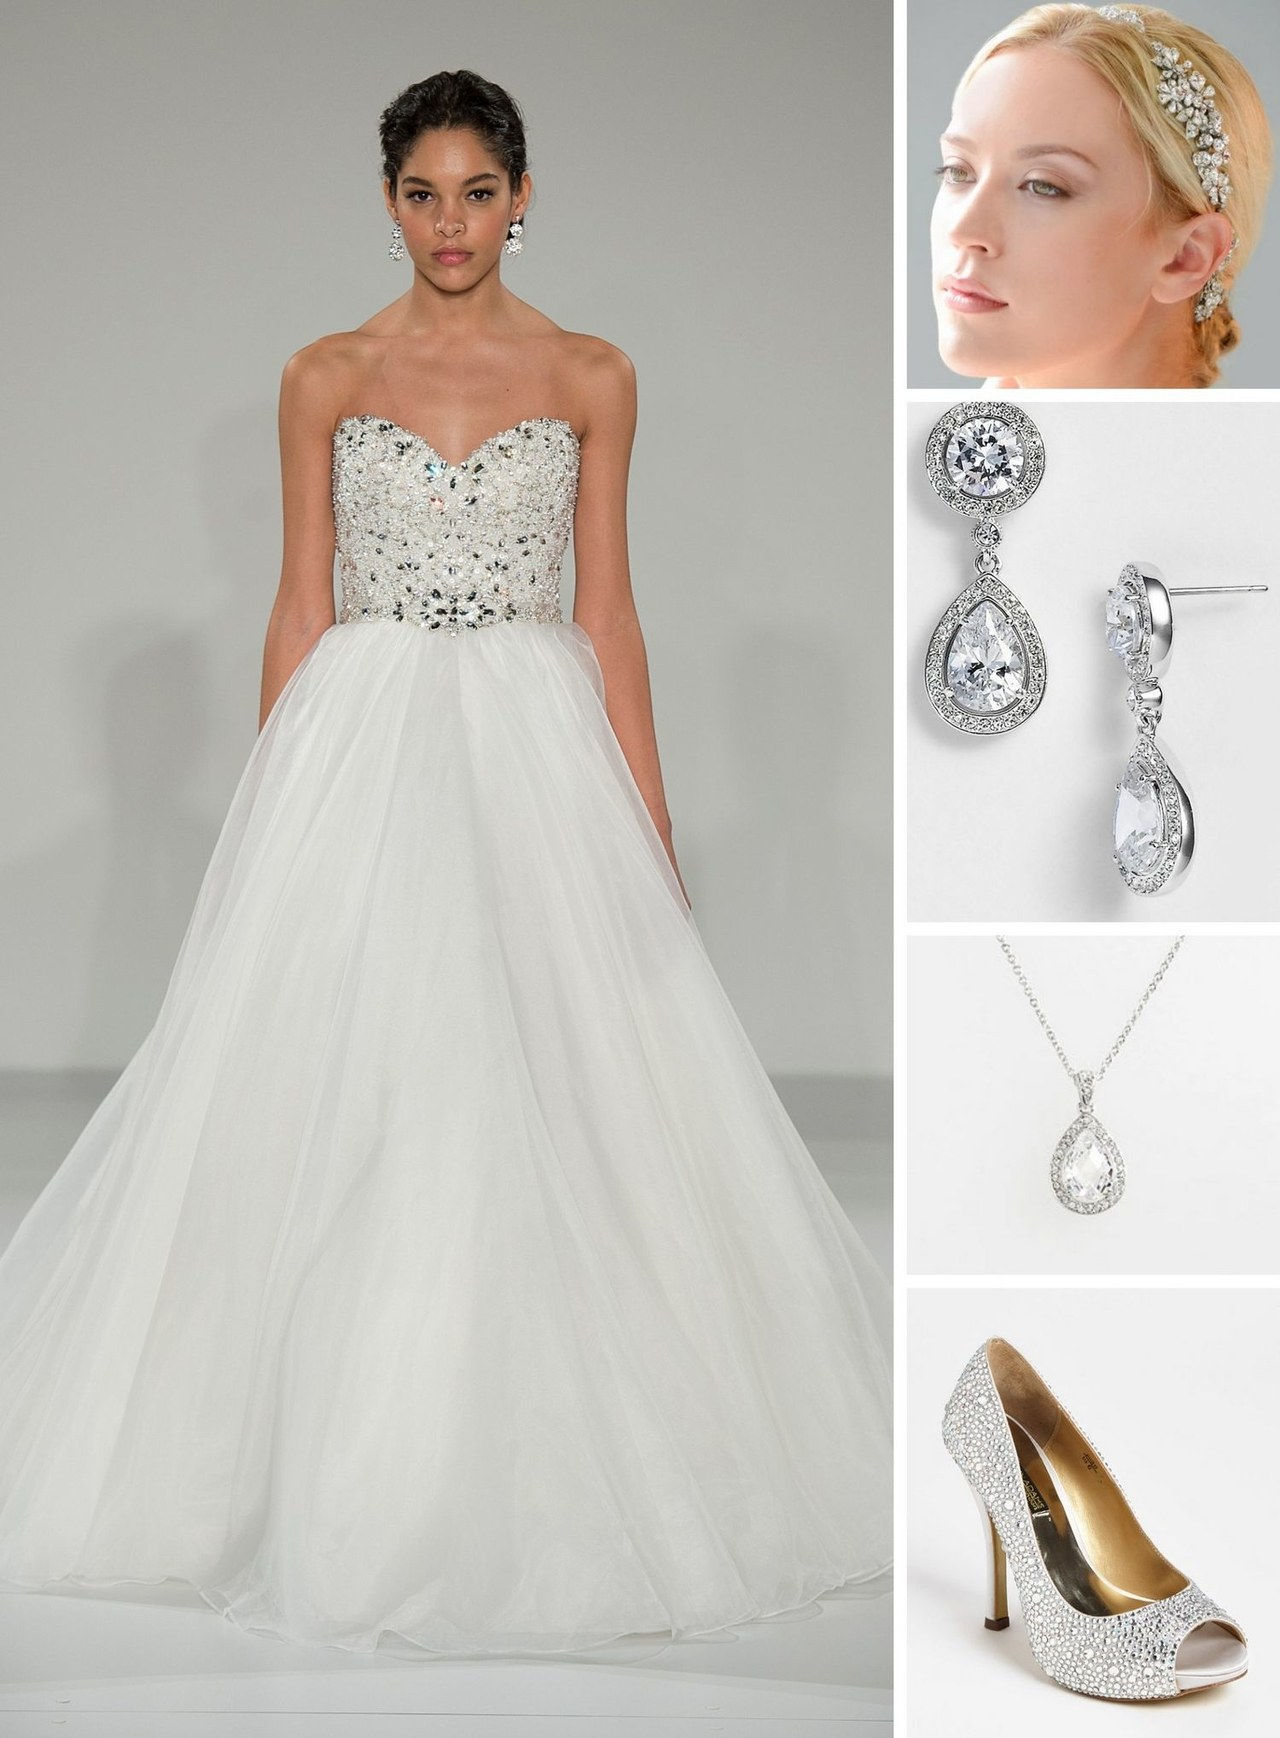 4 desiree bachelorette wedding dress pictures